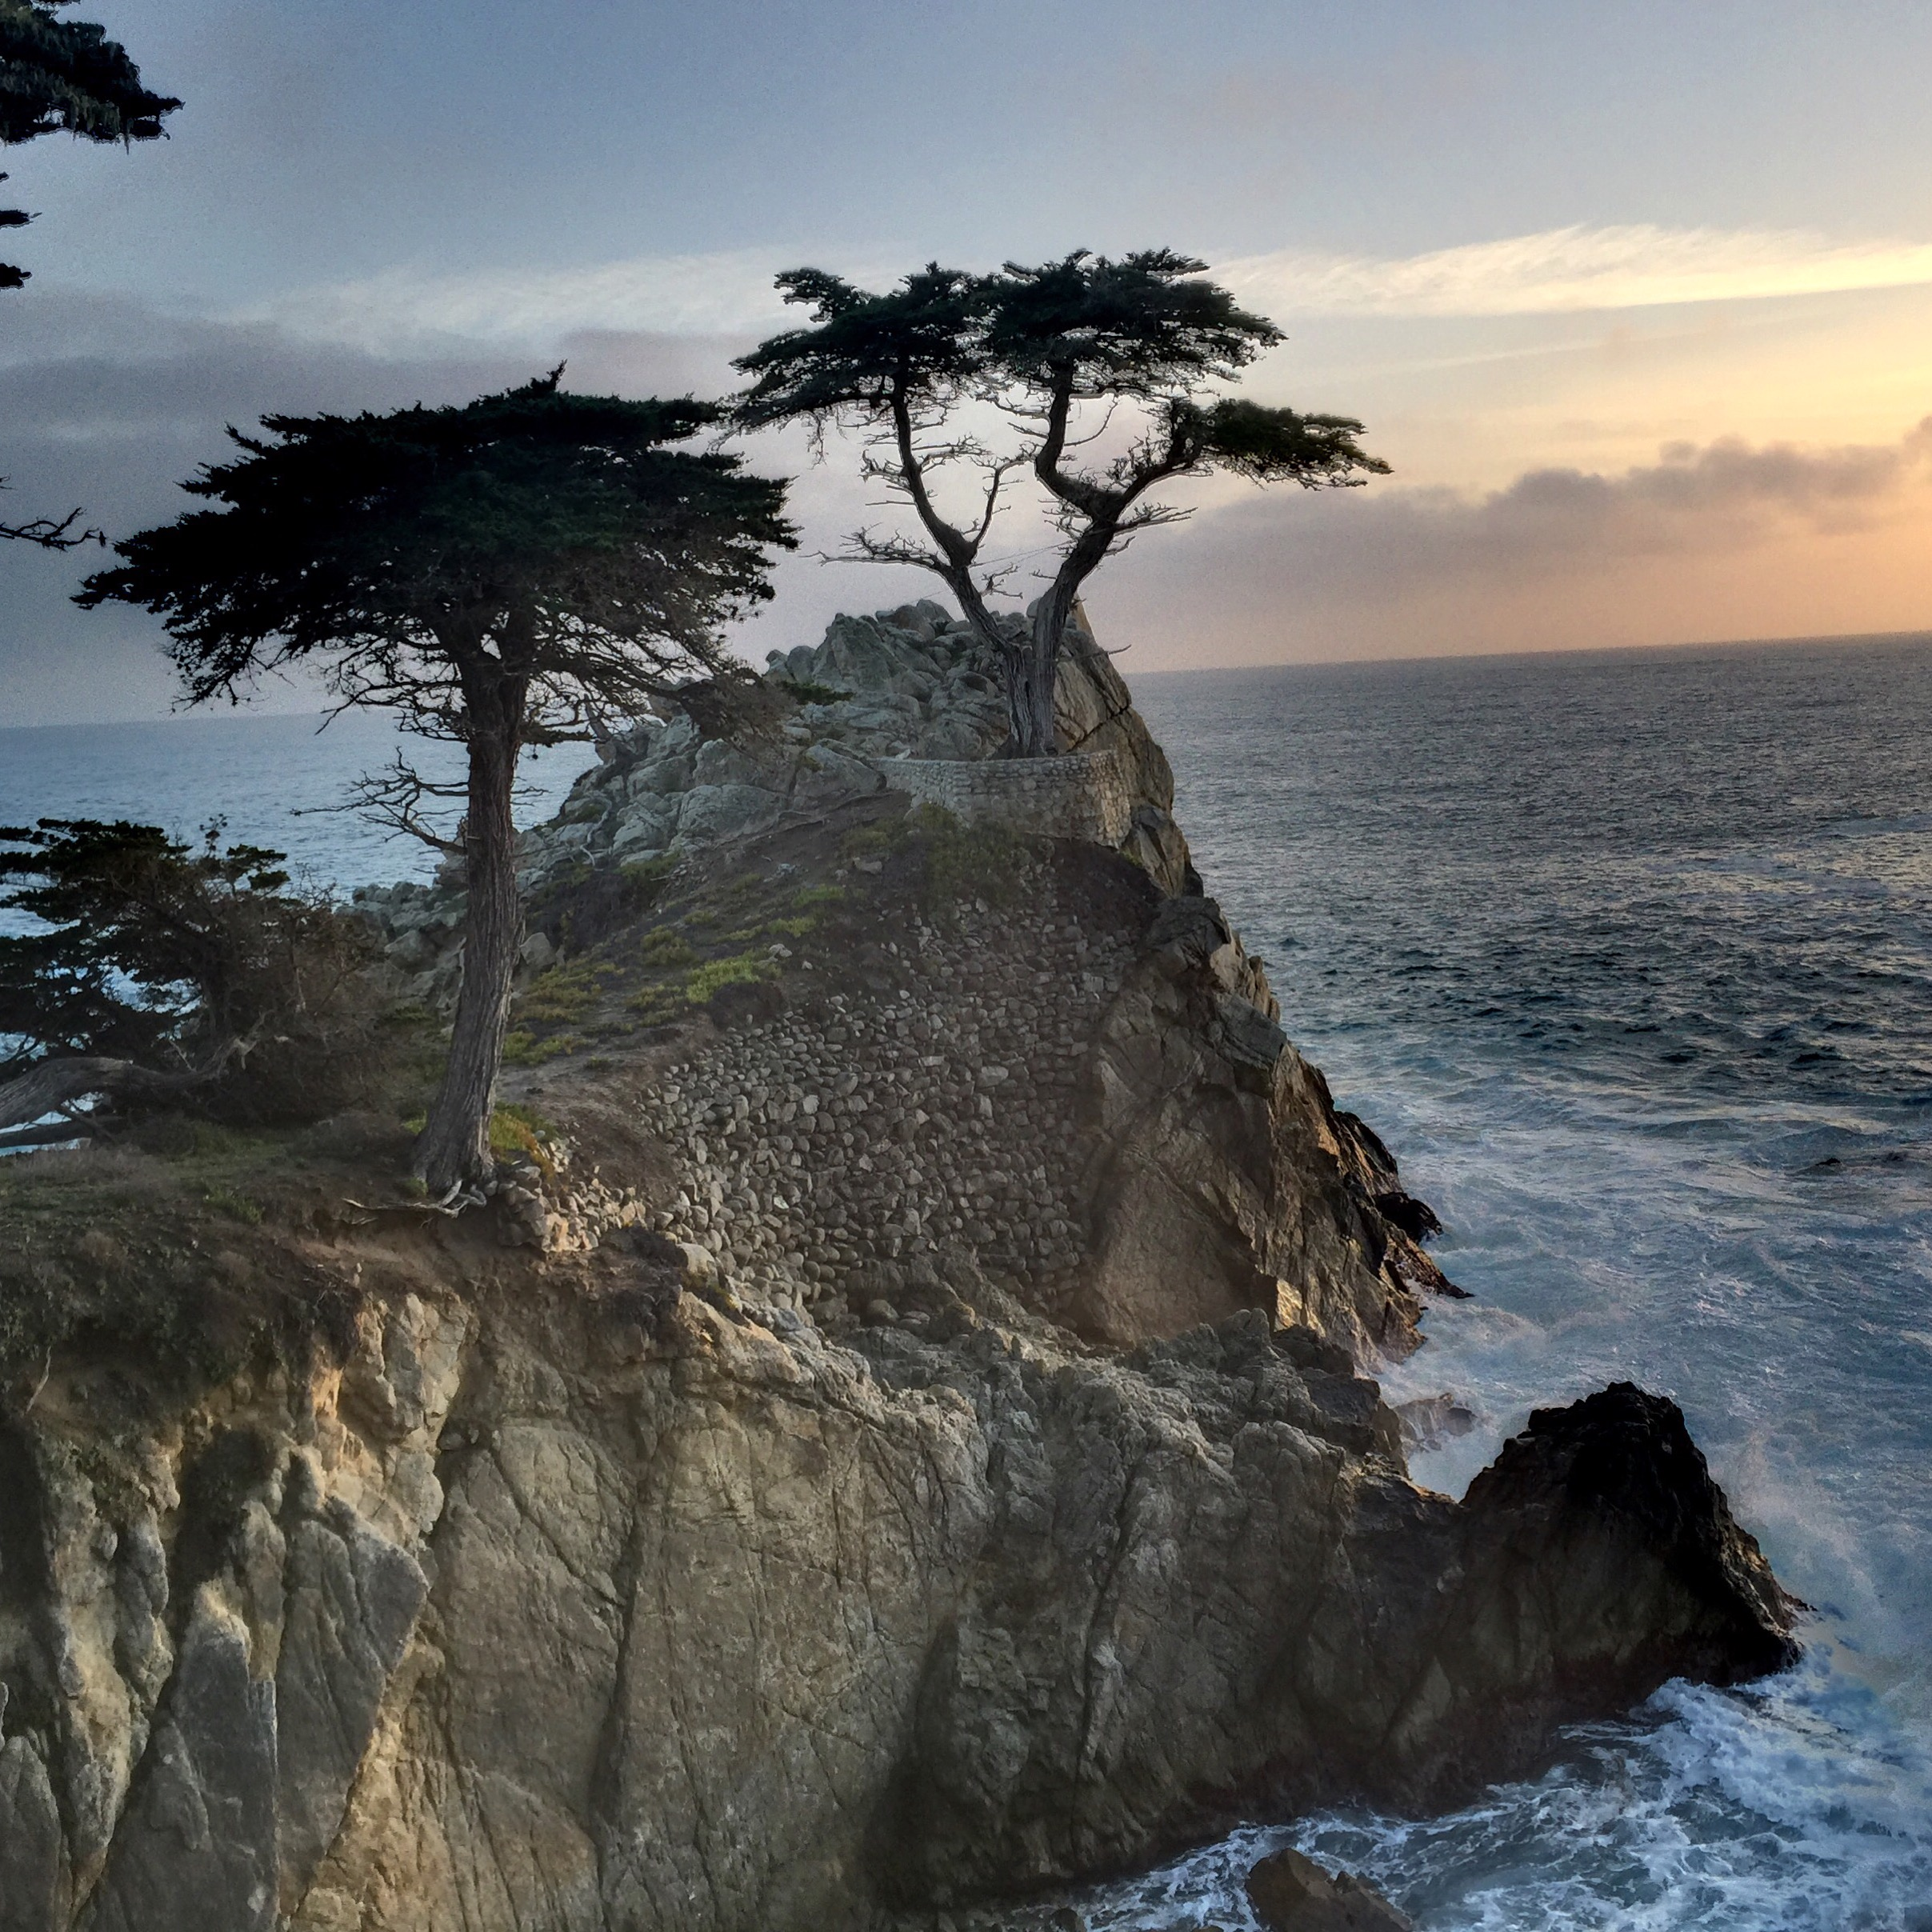 File:Lone cypress tree.jpg